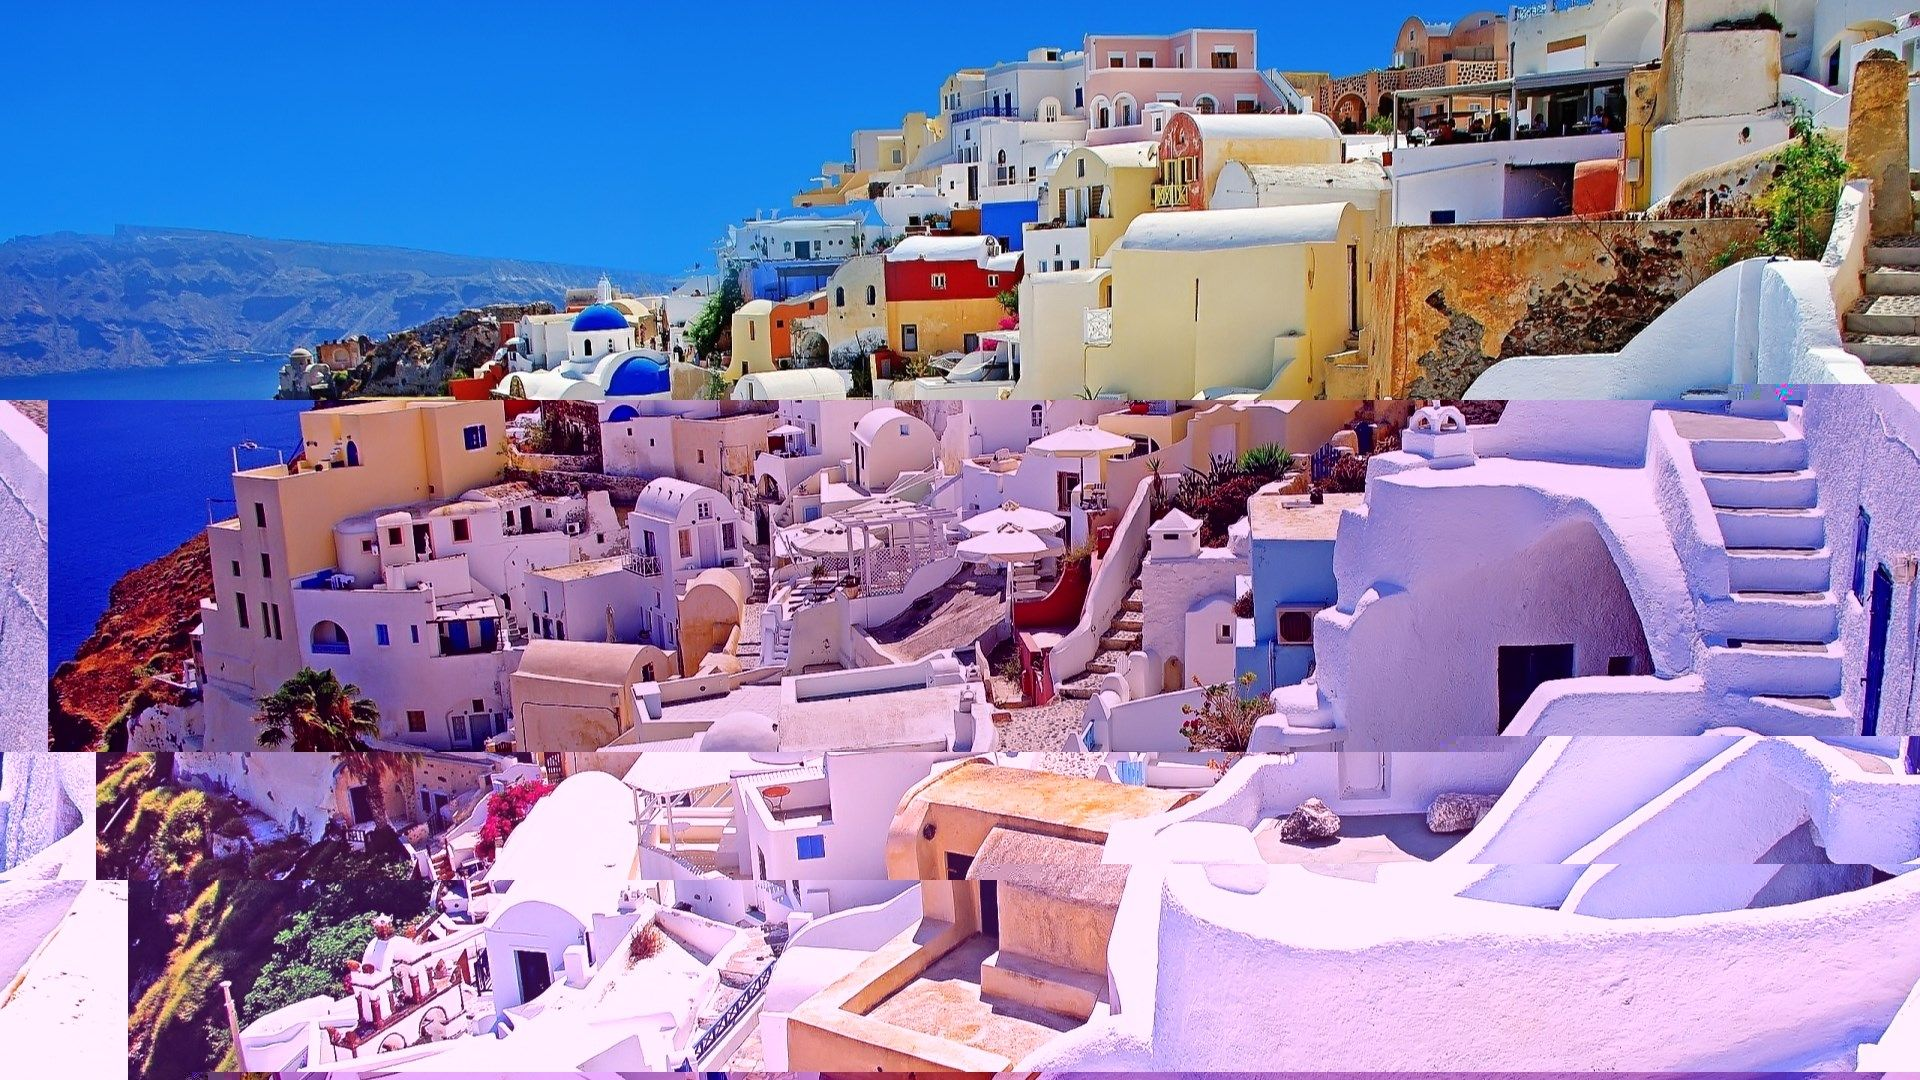 Free Desktop Wallpaper Of Santorini Greece